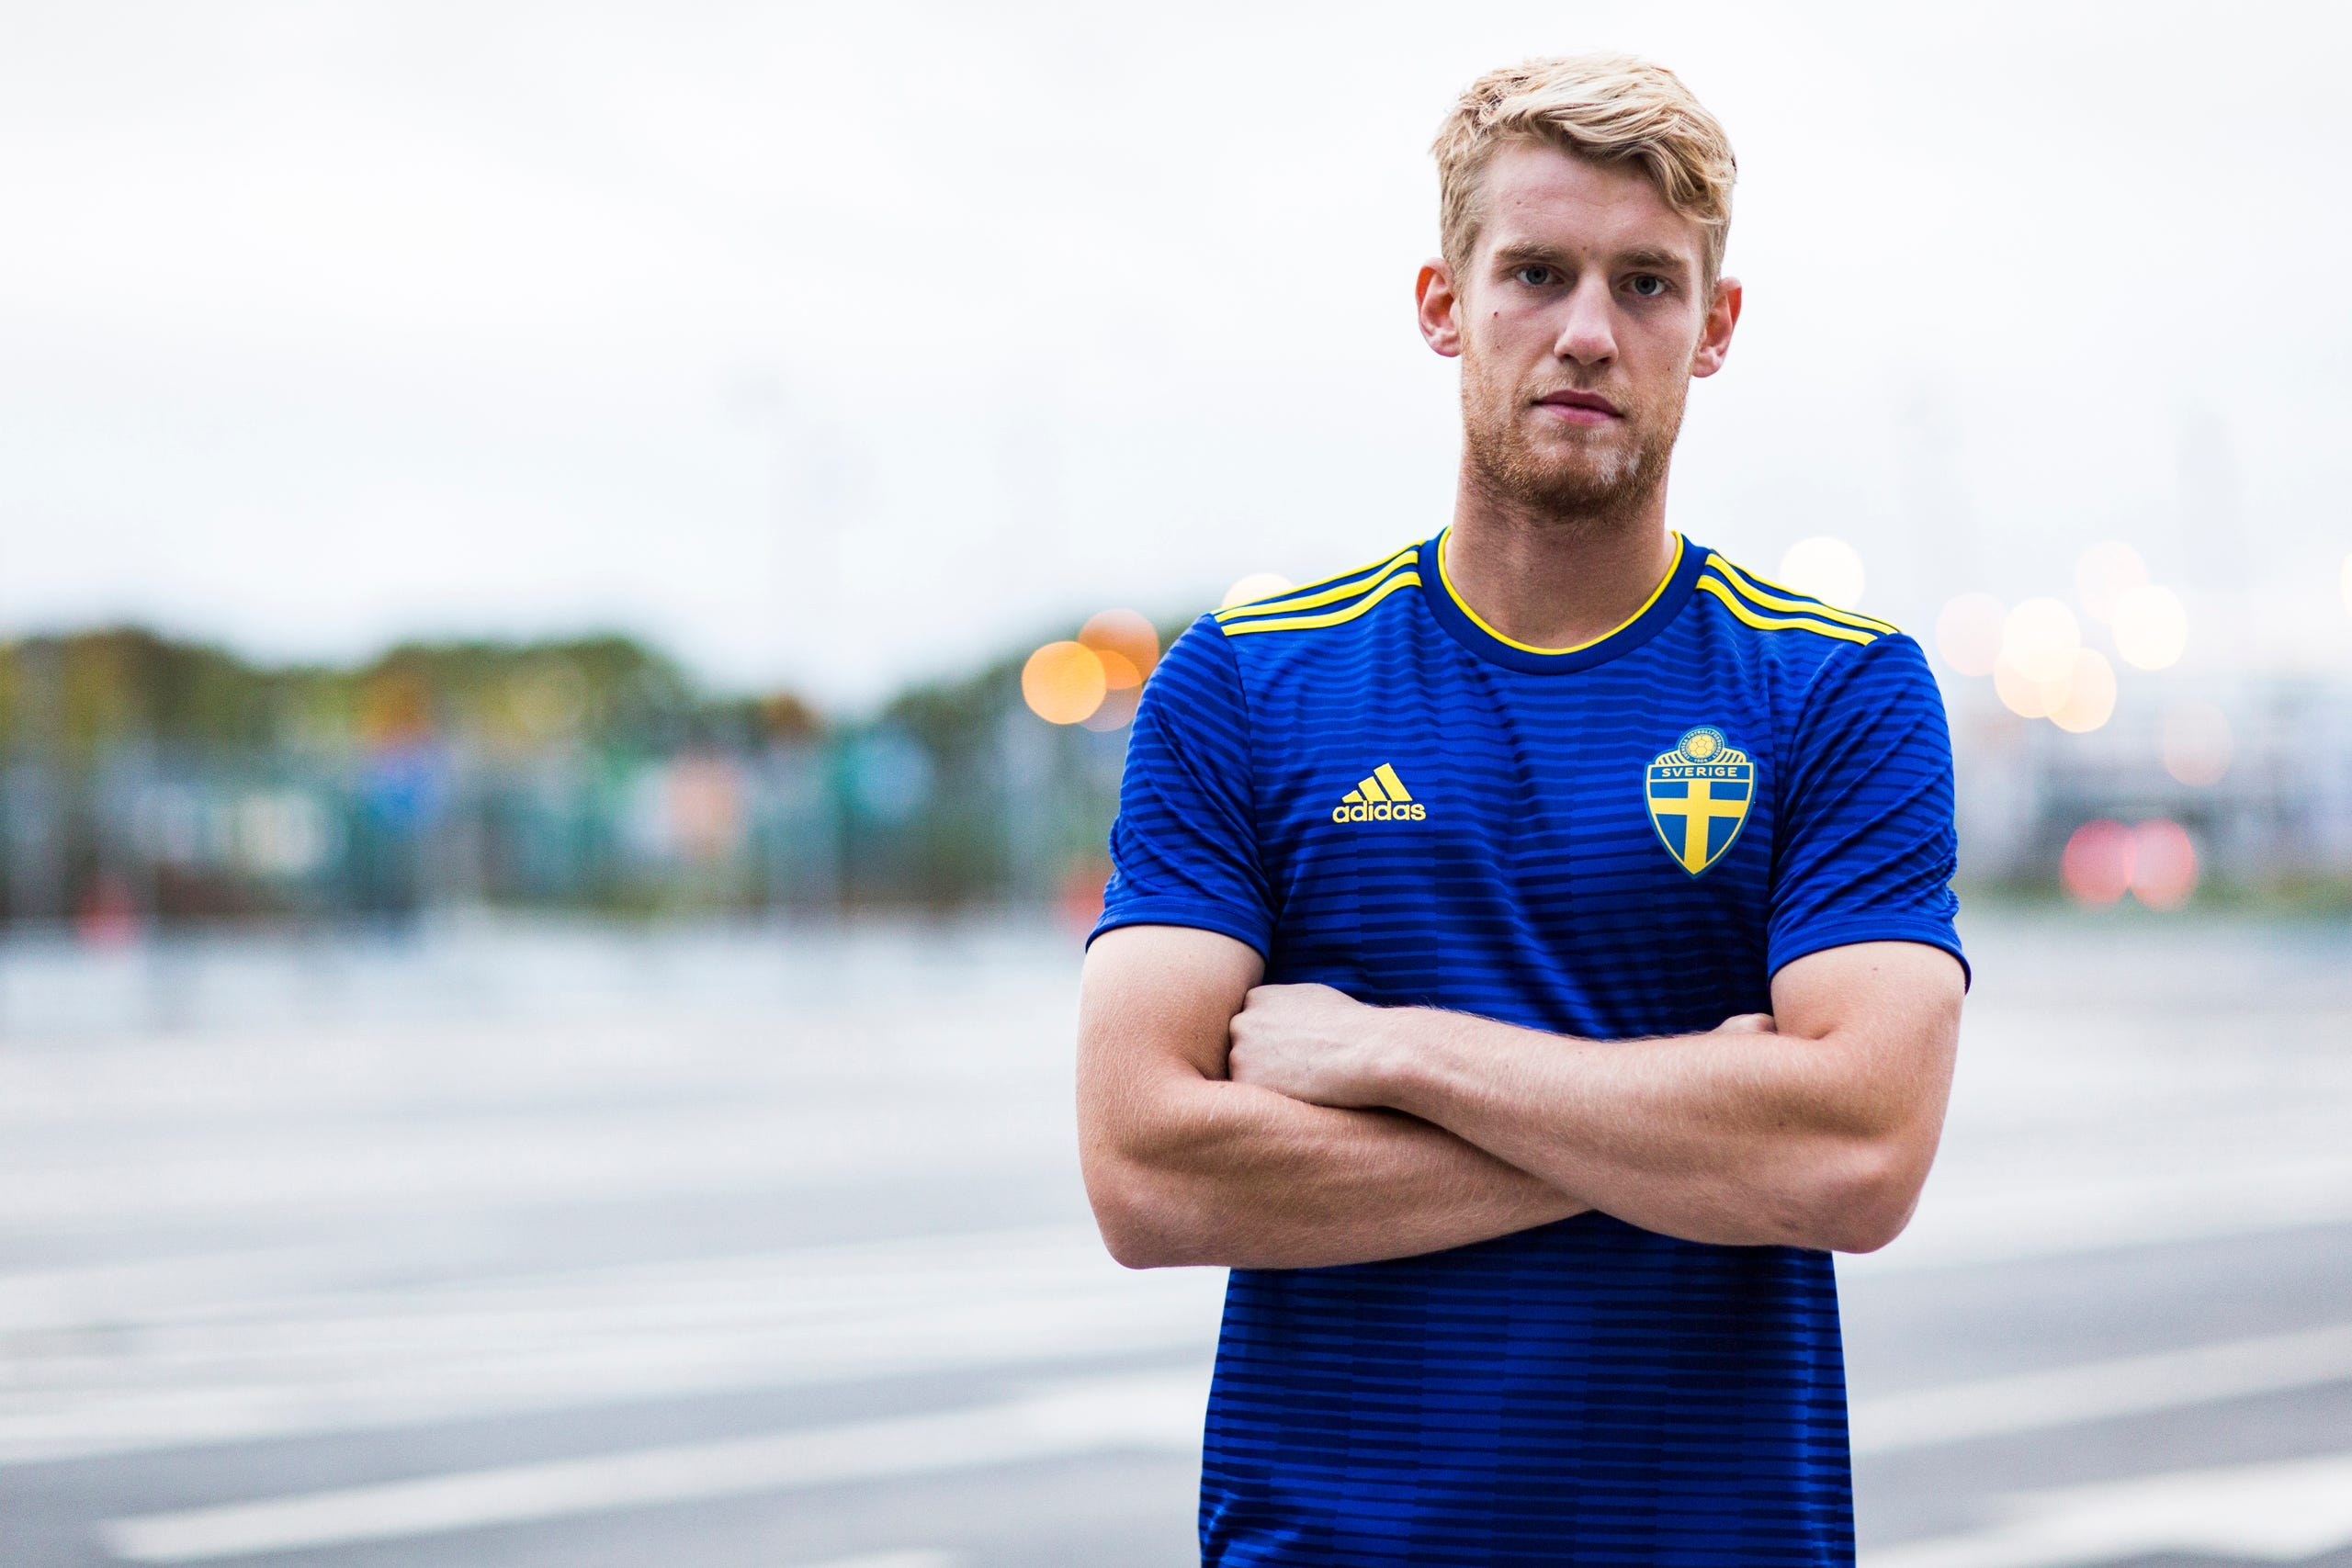 e9ccbcb81ab Adidas released jerseys for nine teams playing in this summer's World Cup  in Russia. Here's